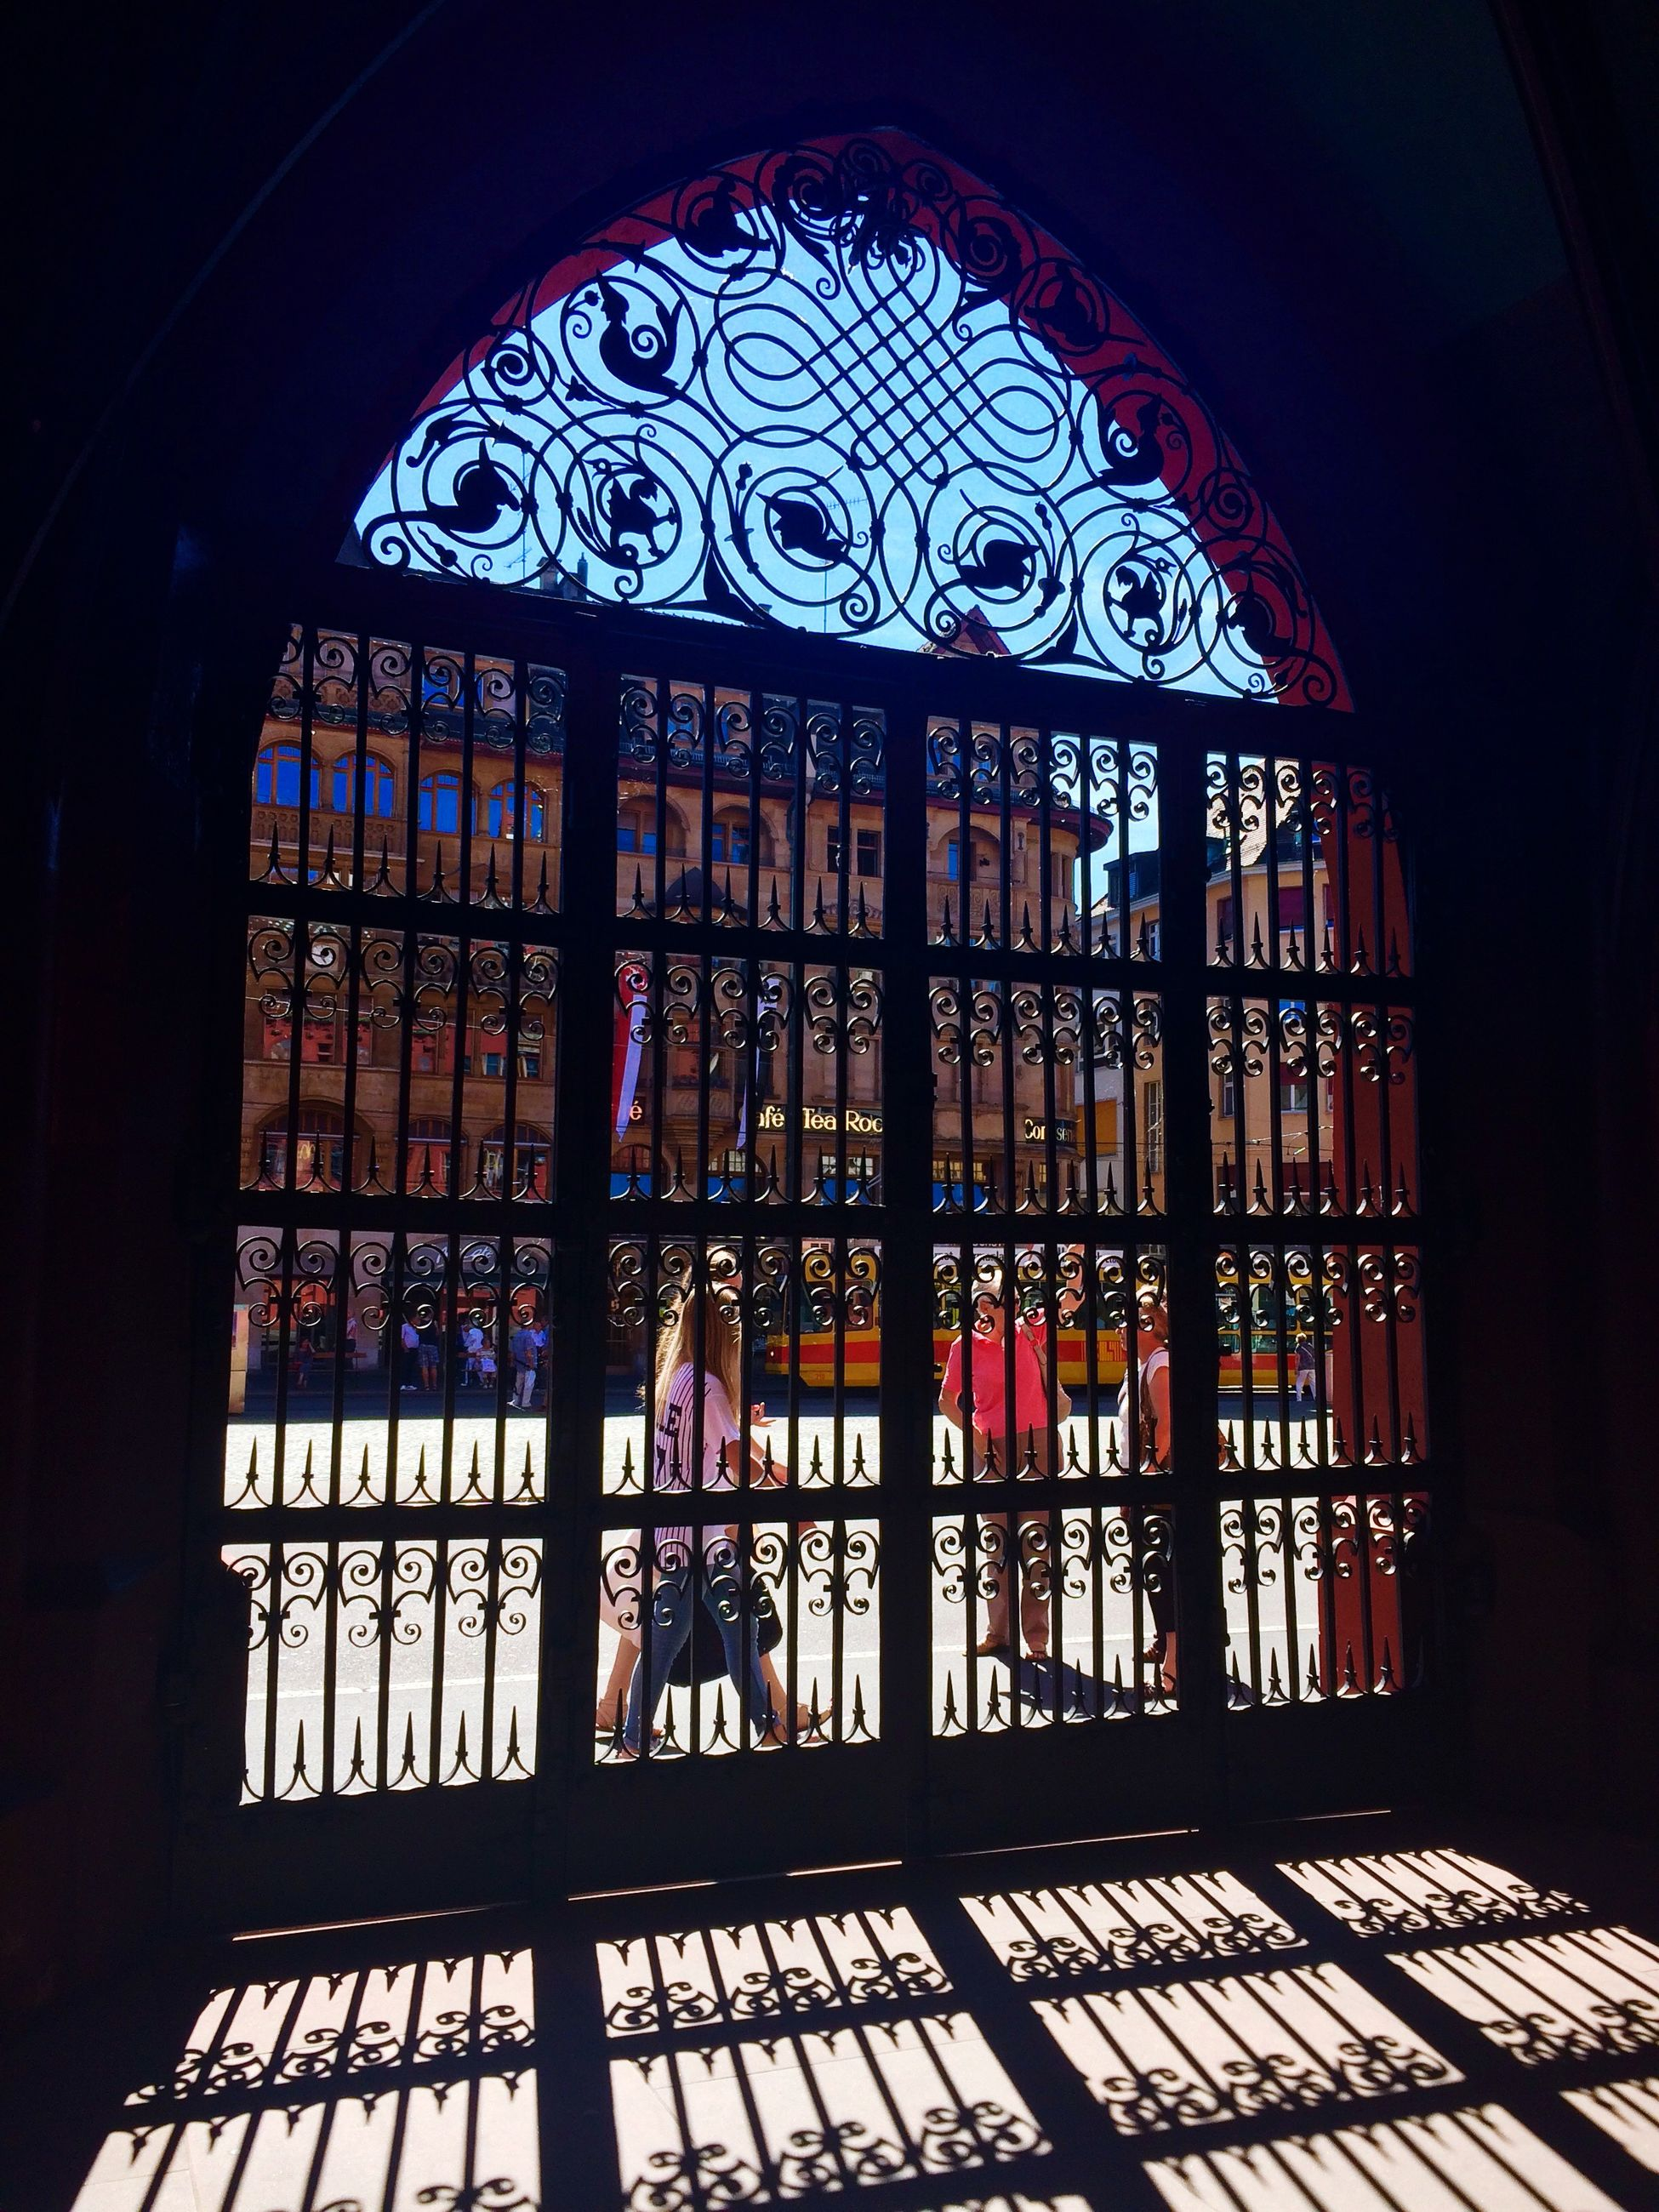 indoors, architecture, built structure, arch, place of worship, religion, window, church, spirituality, entrance, stained glass, door, building exterior, ornate, cathedral, day, glass - material, pattern